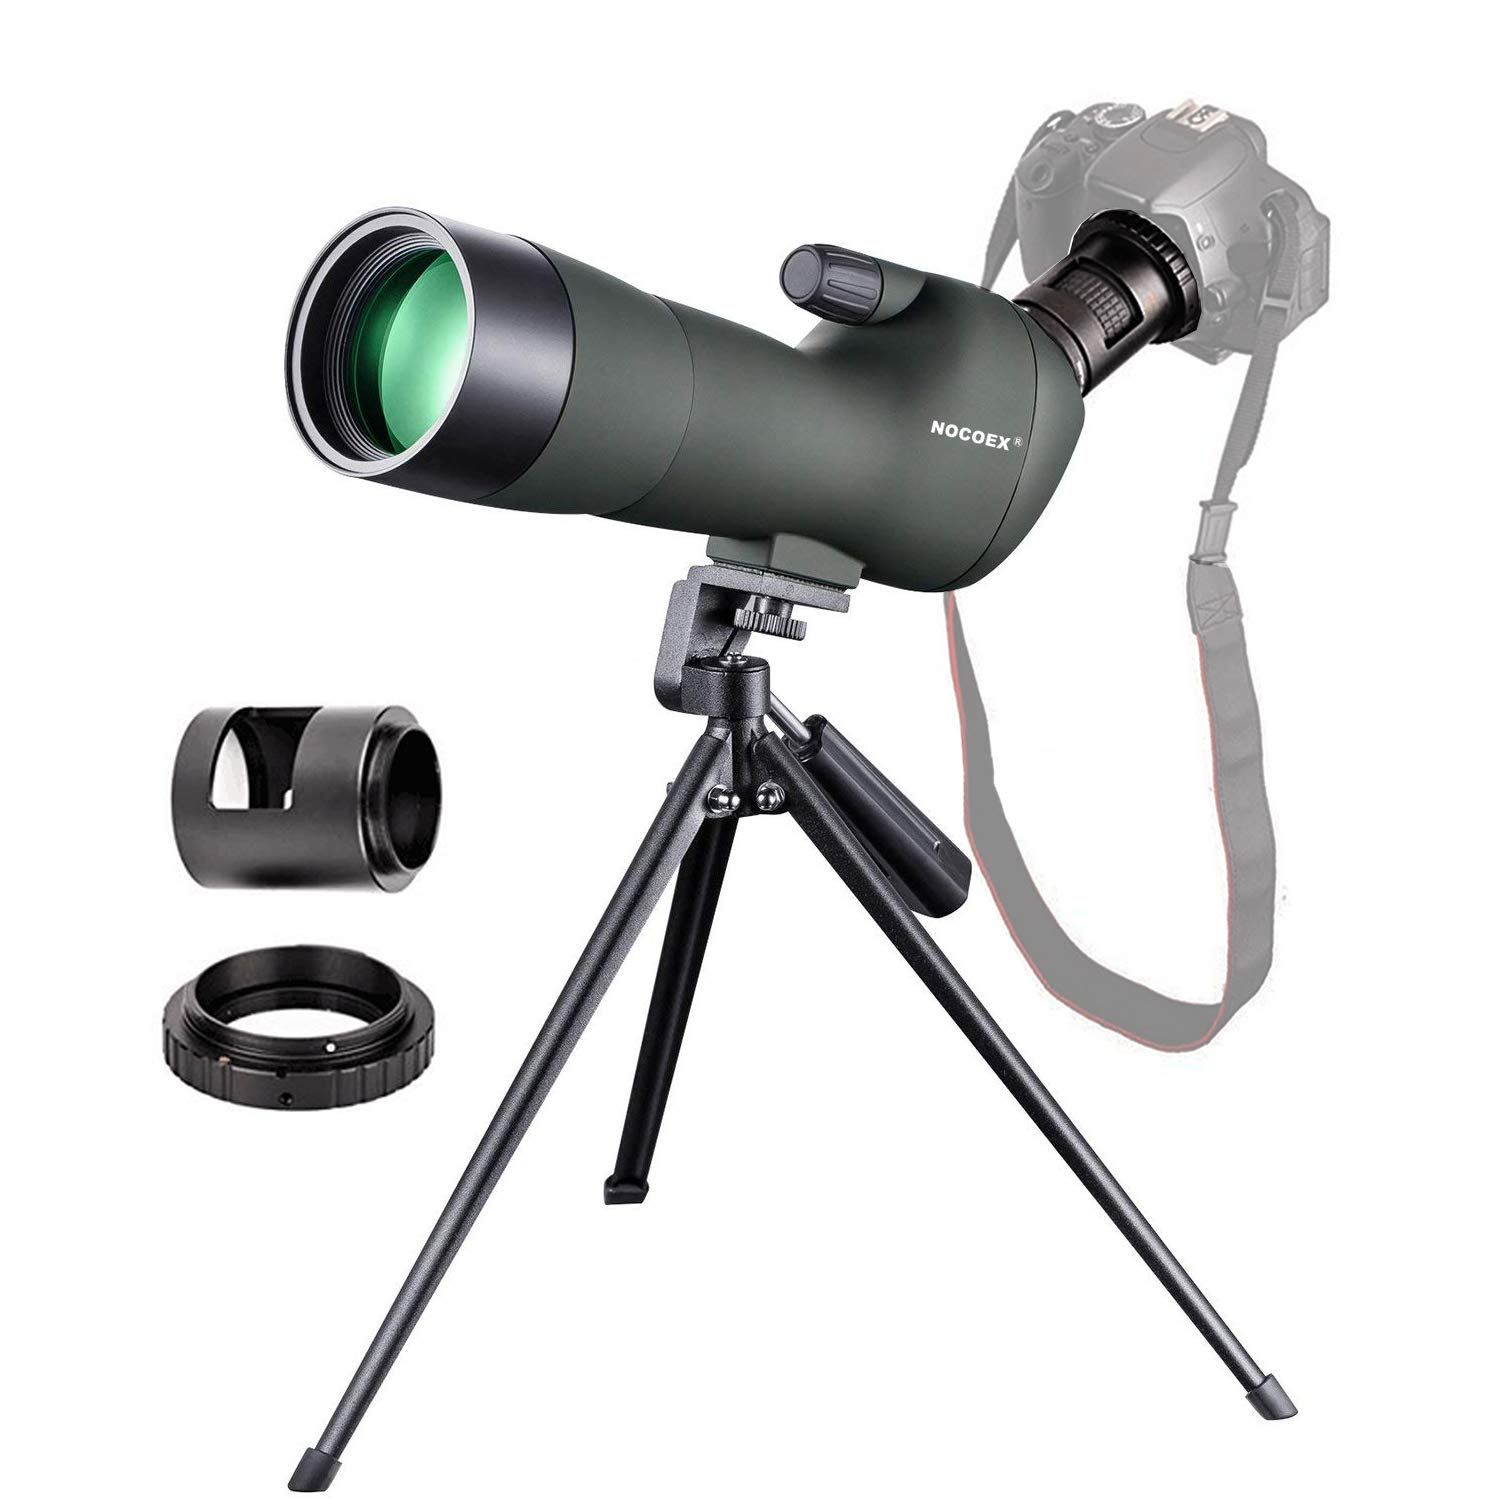 NOCOEX 20-60X60 Waterproof Zoom Spotting Scope- Prism Scope for Birdwatching Target Shooting Archery Outdoor Activities -with Tripod & Canon Photography Adapter-Get The Beauty into Screen